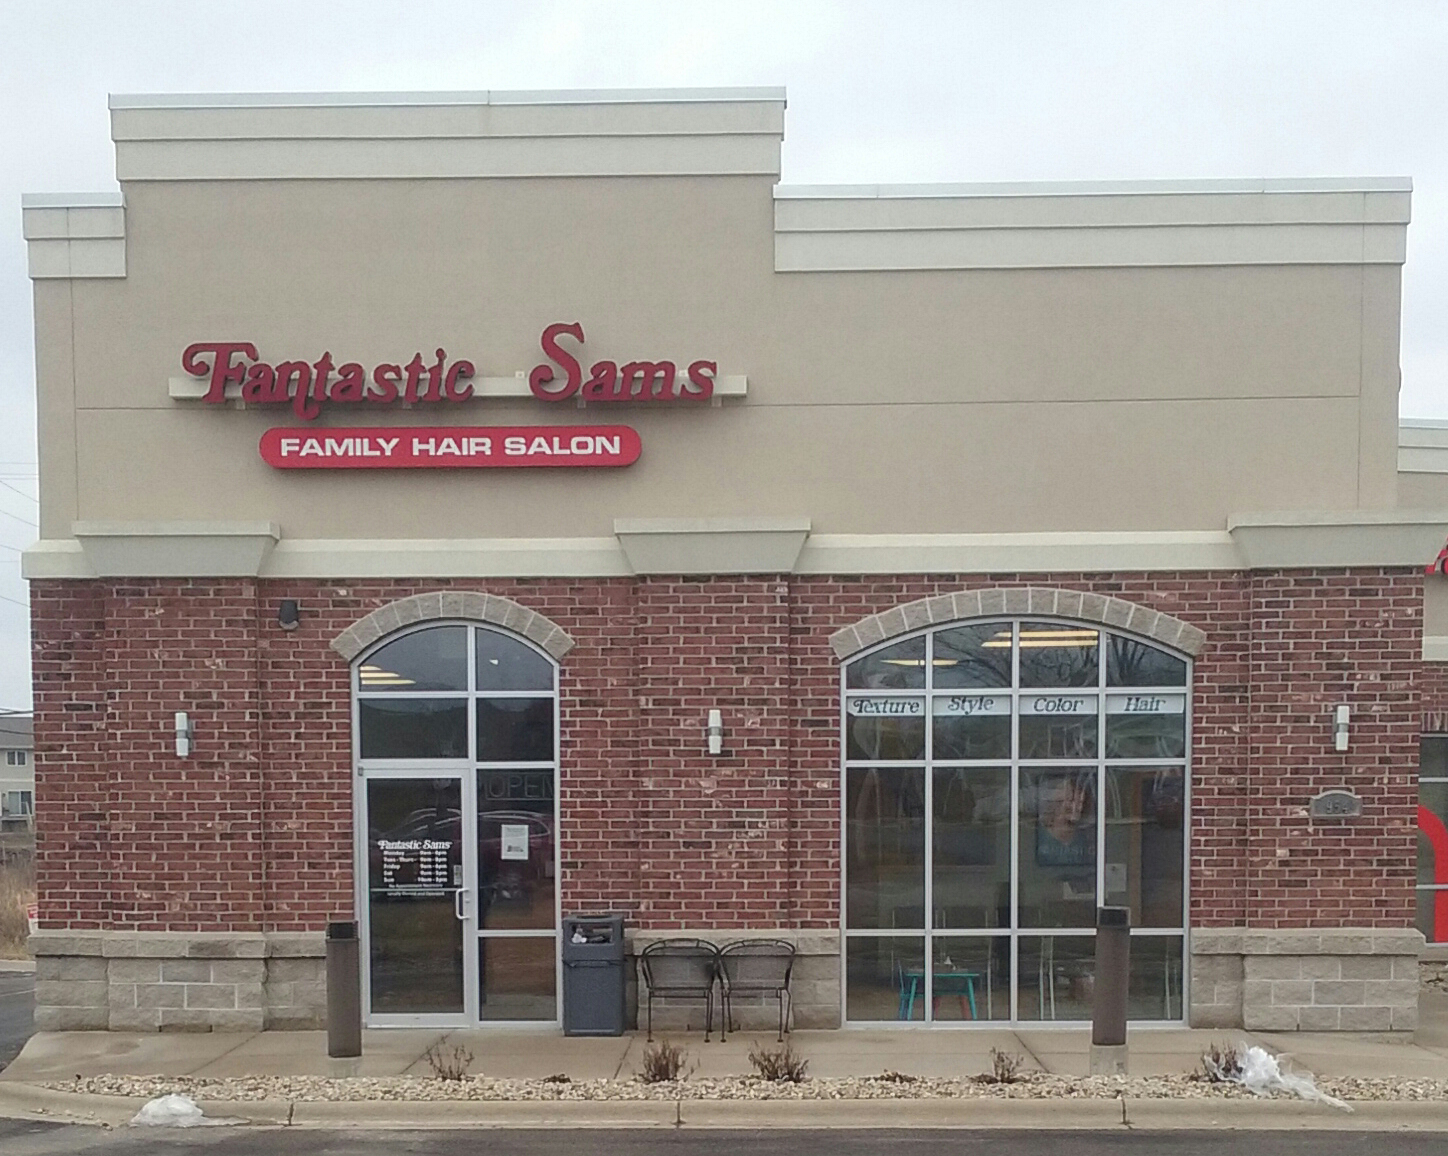 Hair Salons In River Falls Wisconsin - Famous Hair Salon 2018